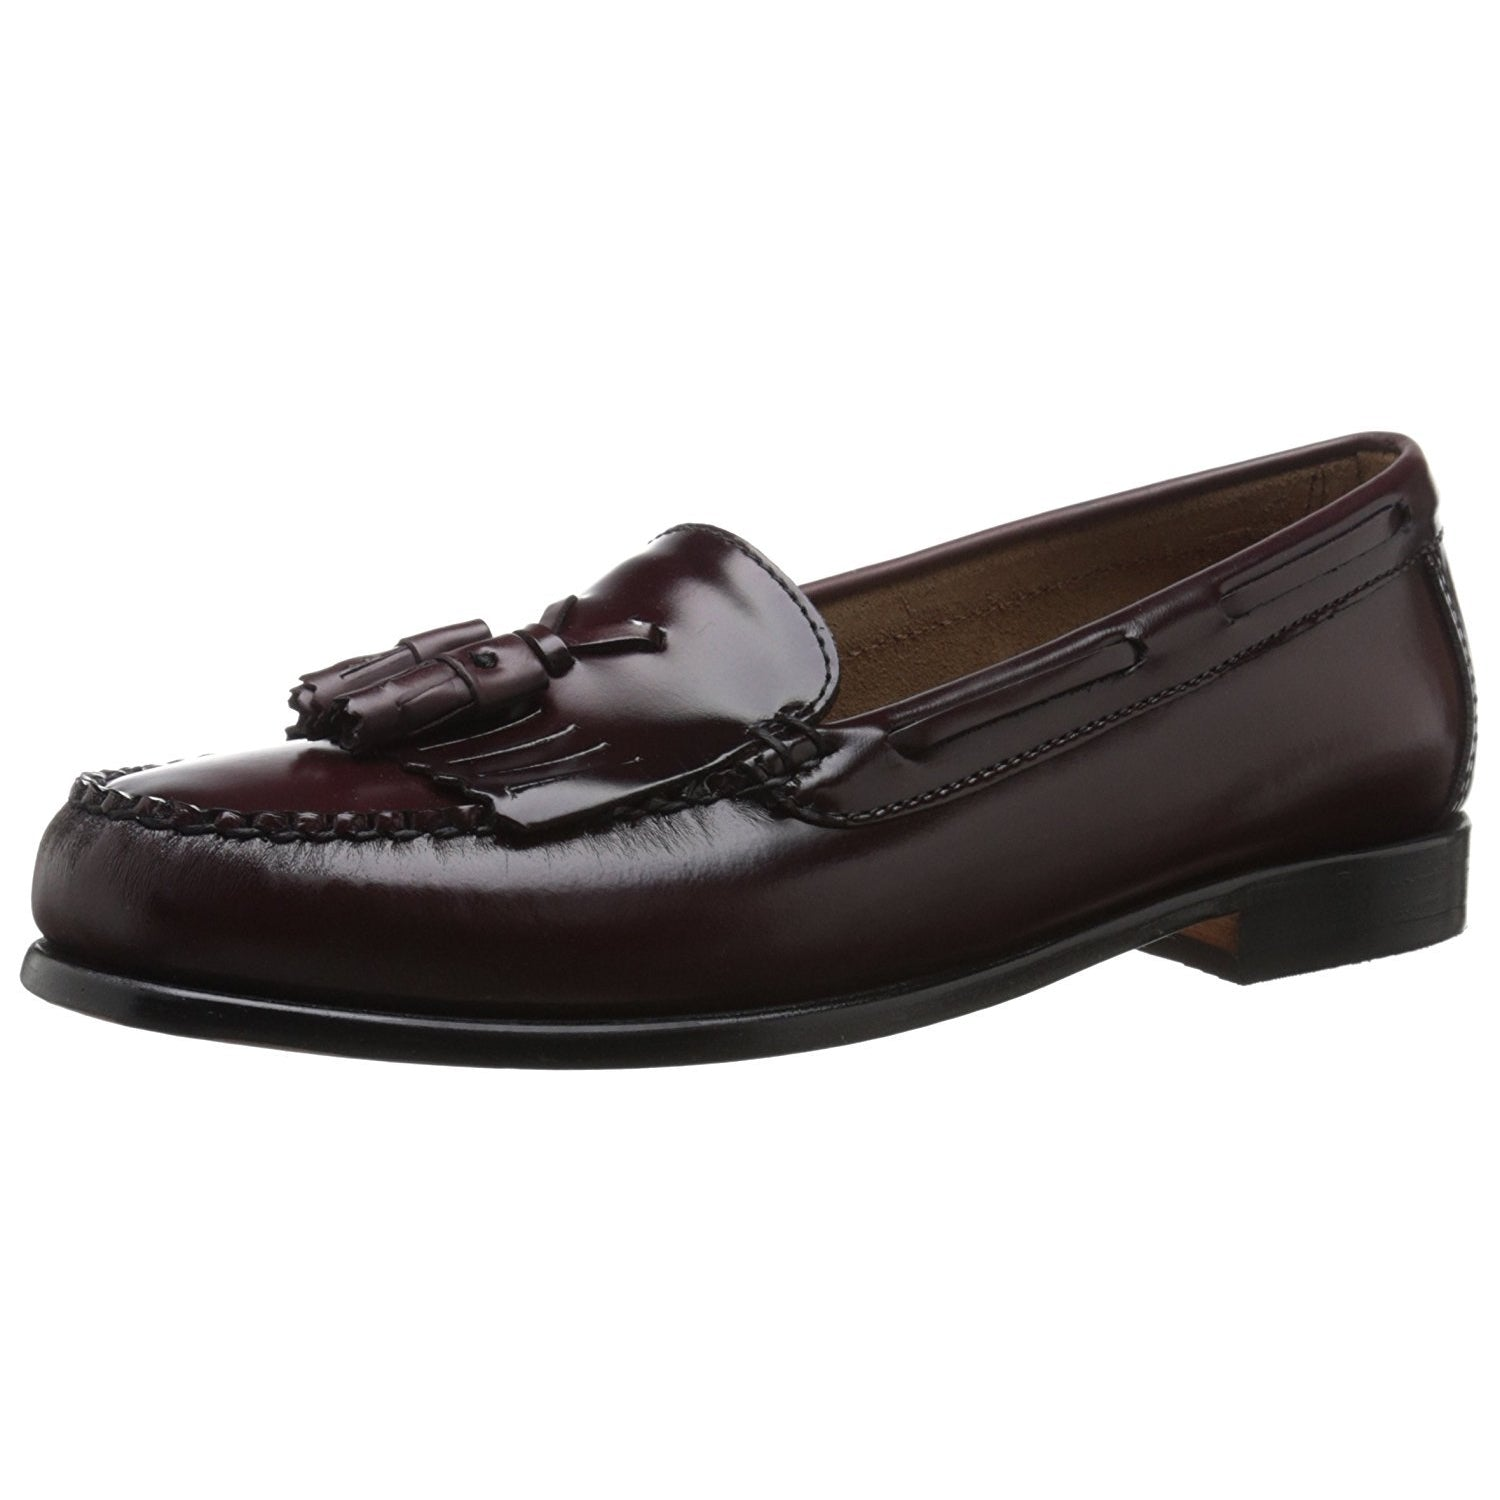 G.H. Bass & Co. Women's Washington Penny Loafer